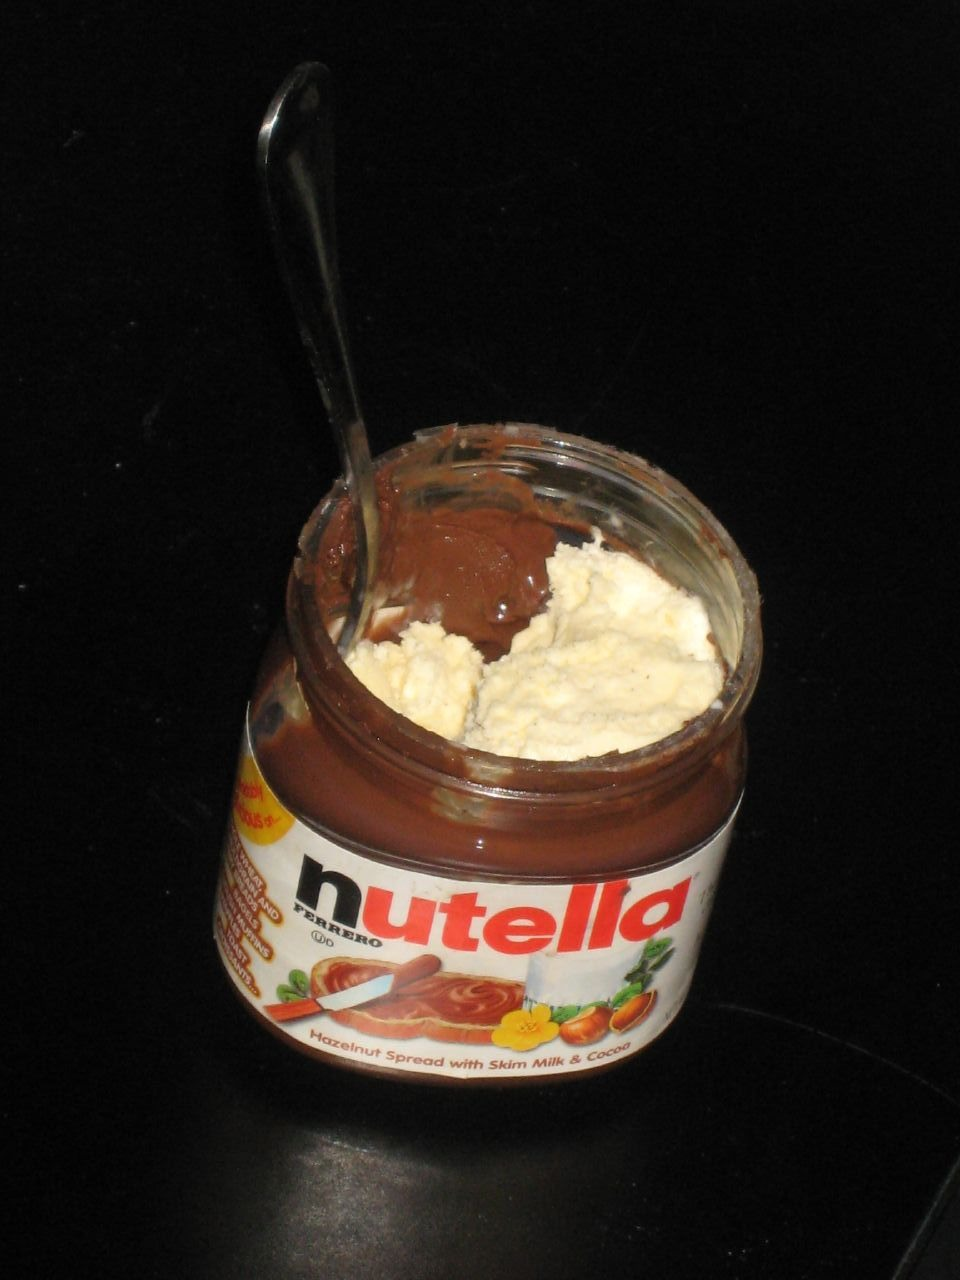 Almost finished with your nutella ? Add ice cream(: